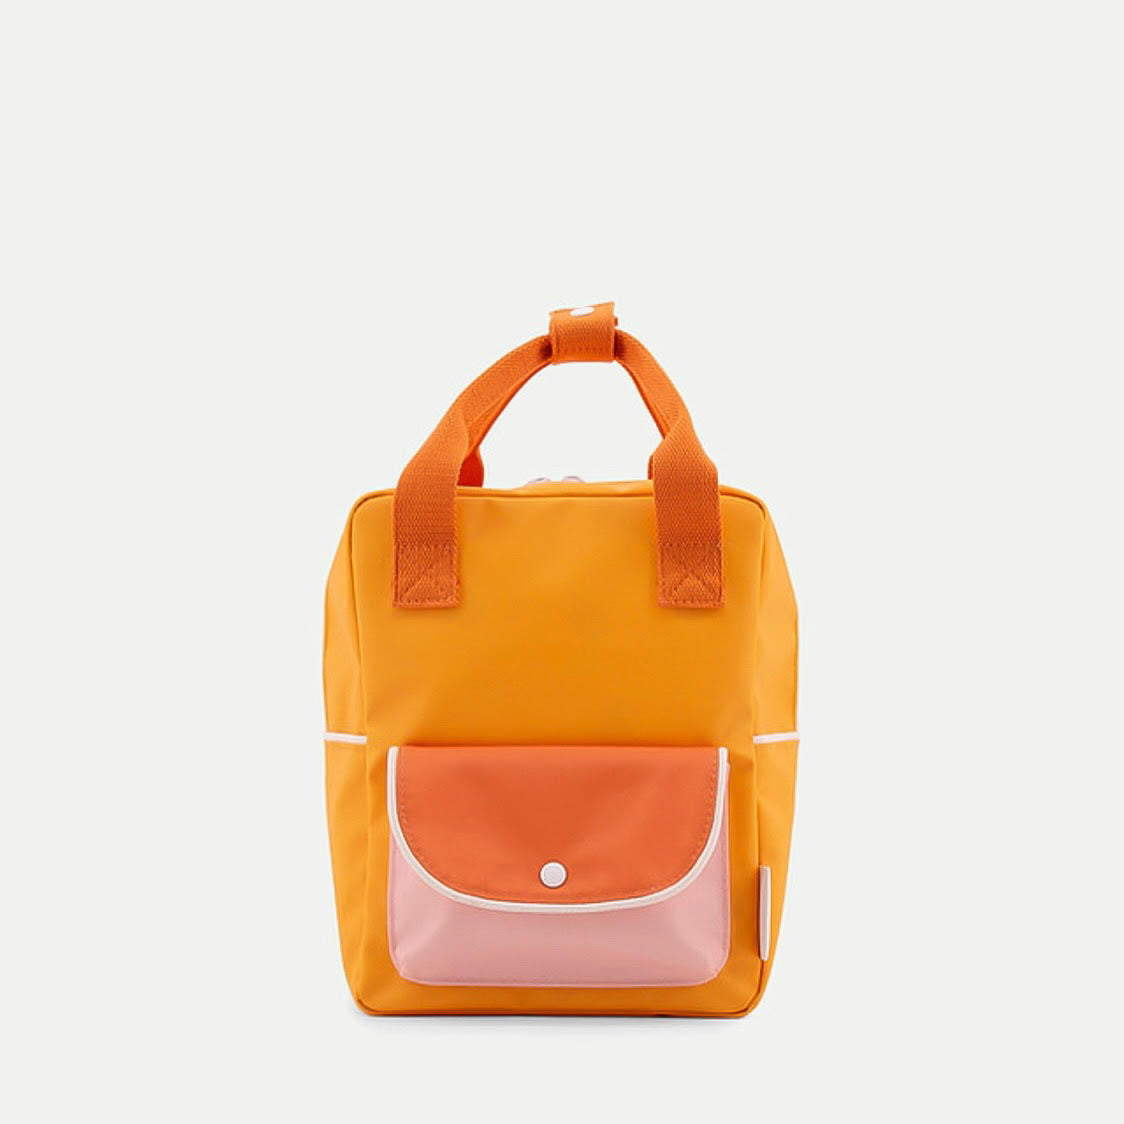 Sticky Lemon Small Backpack Wanderer - Sunny Yellow/Carrot Orange/Candy Pink